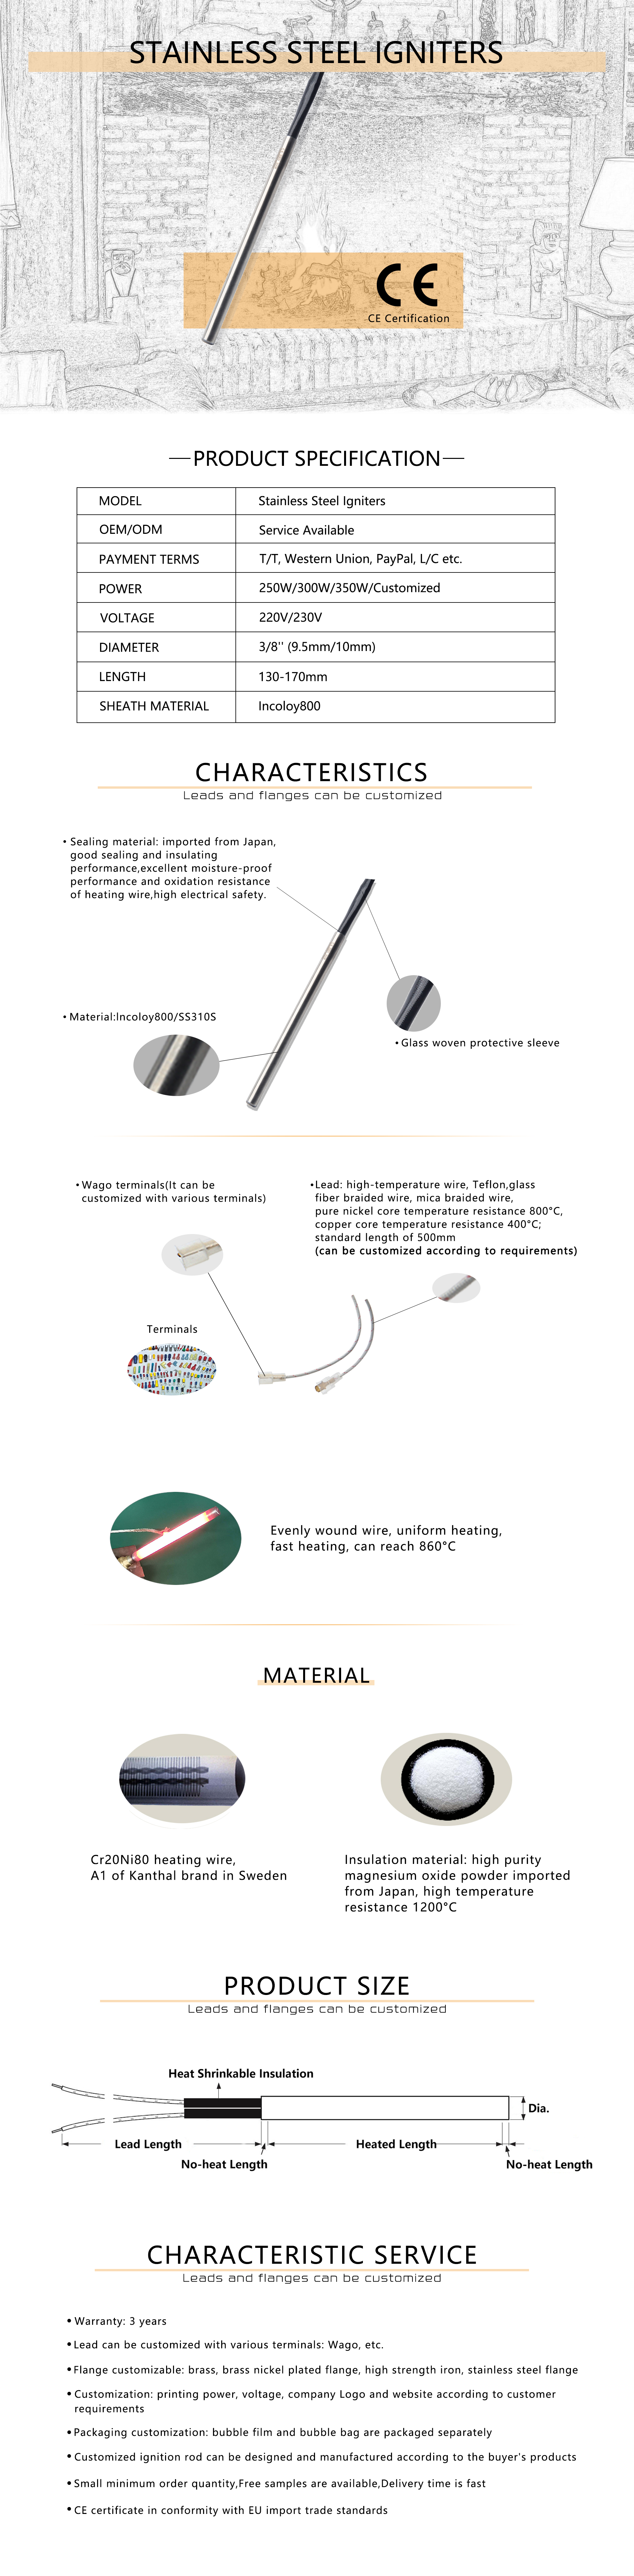 Stainless steel igniter (2)